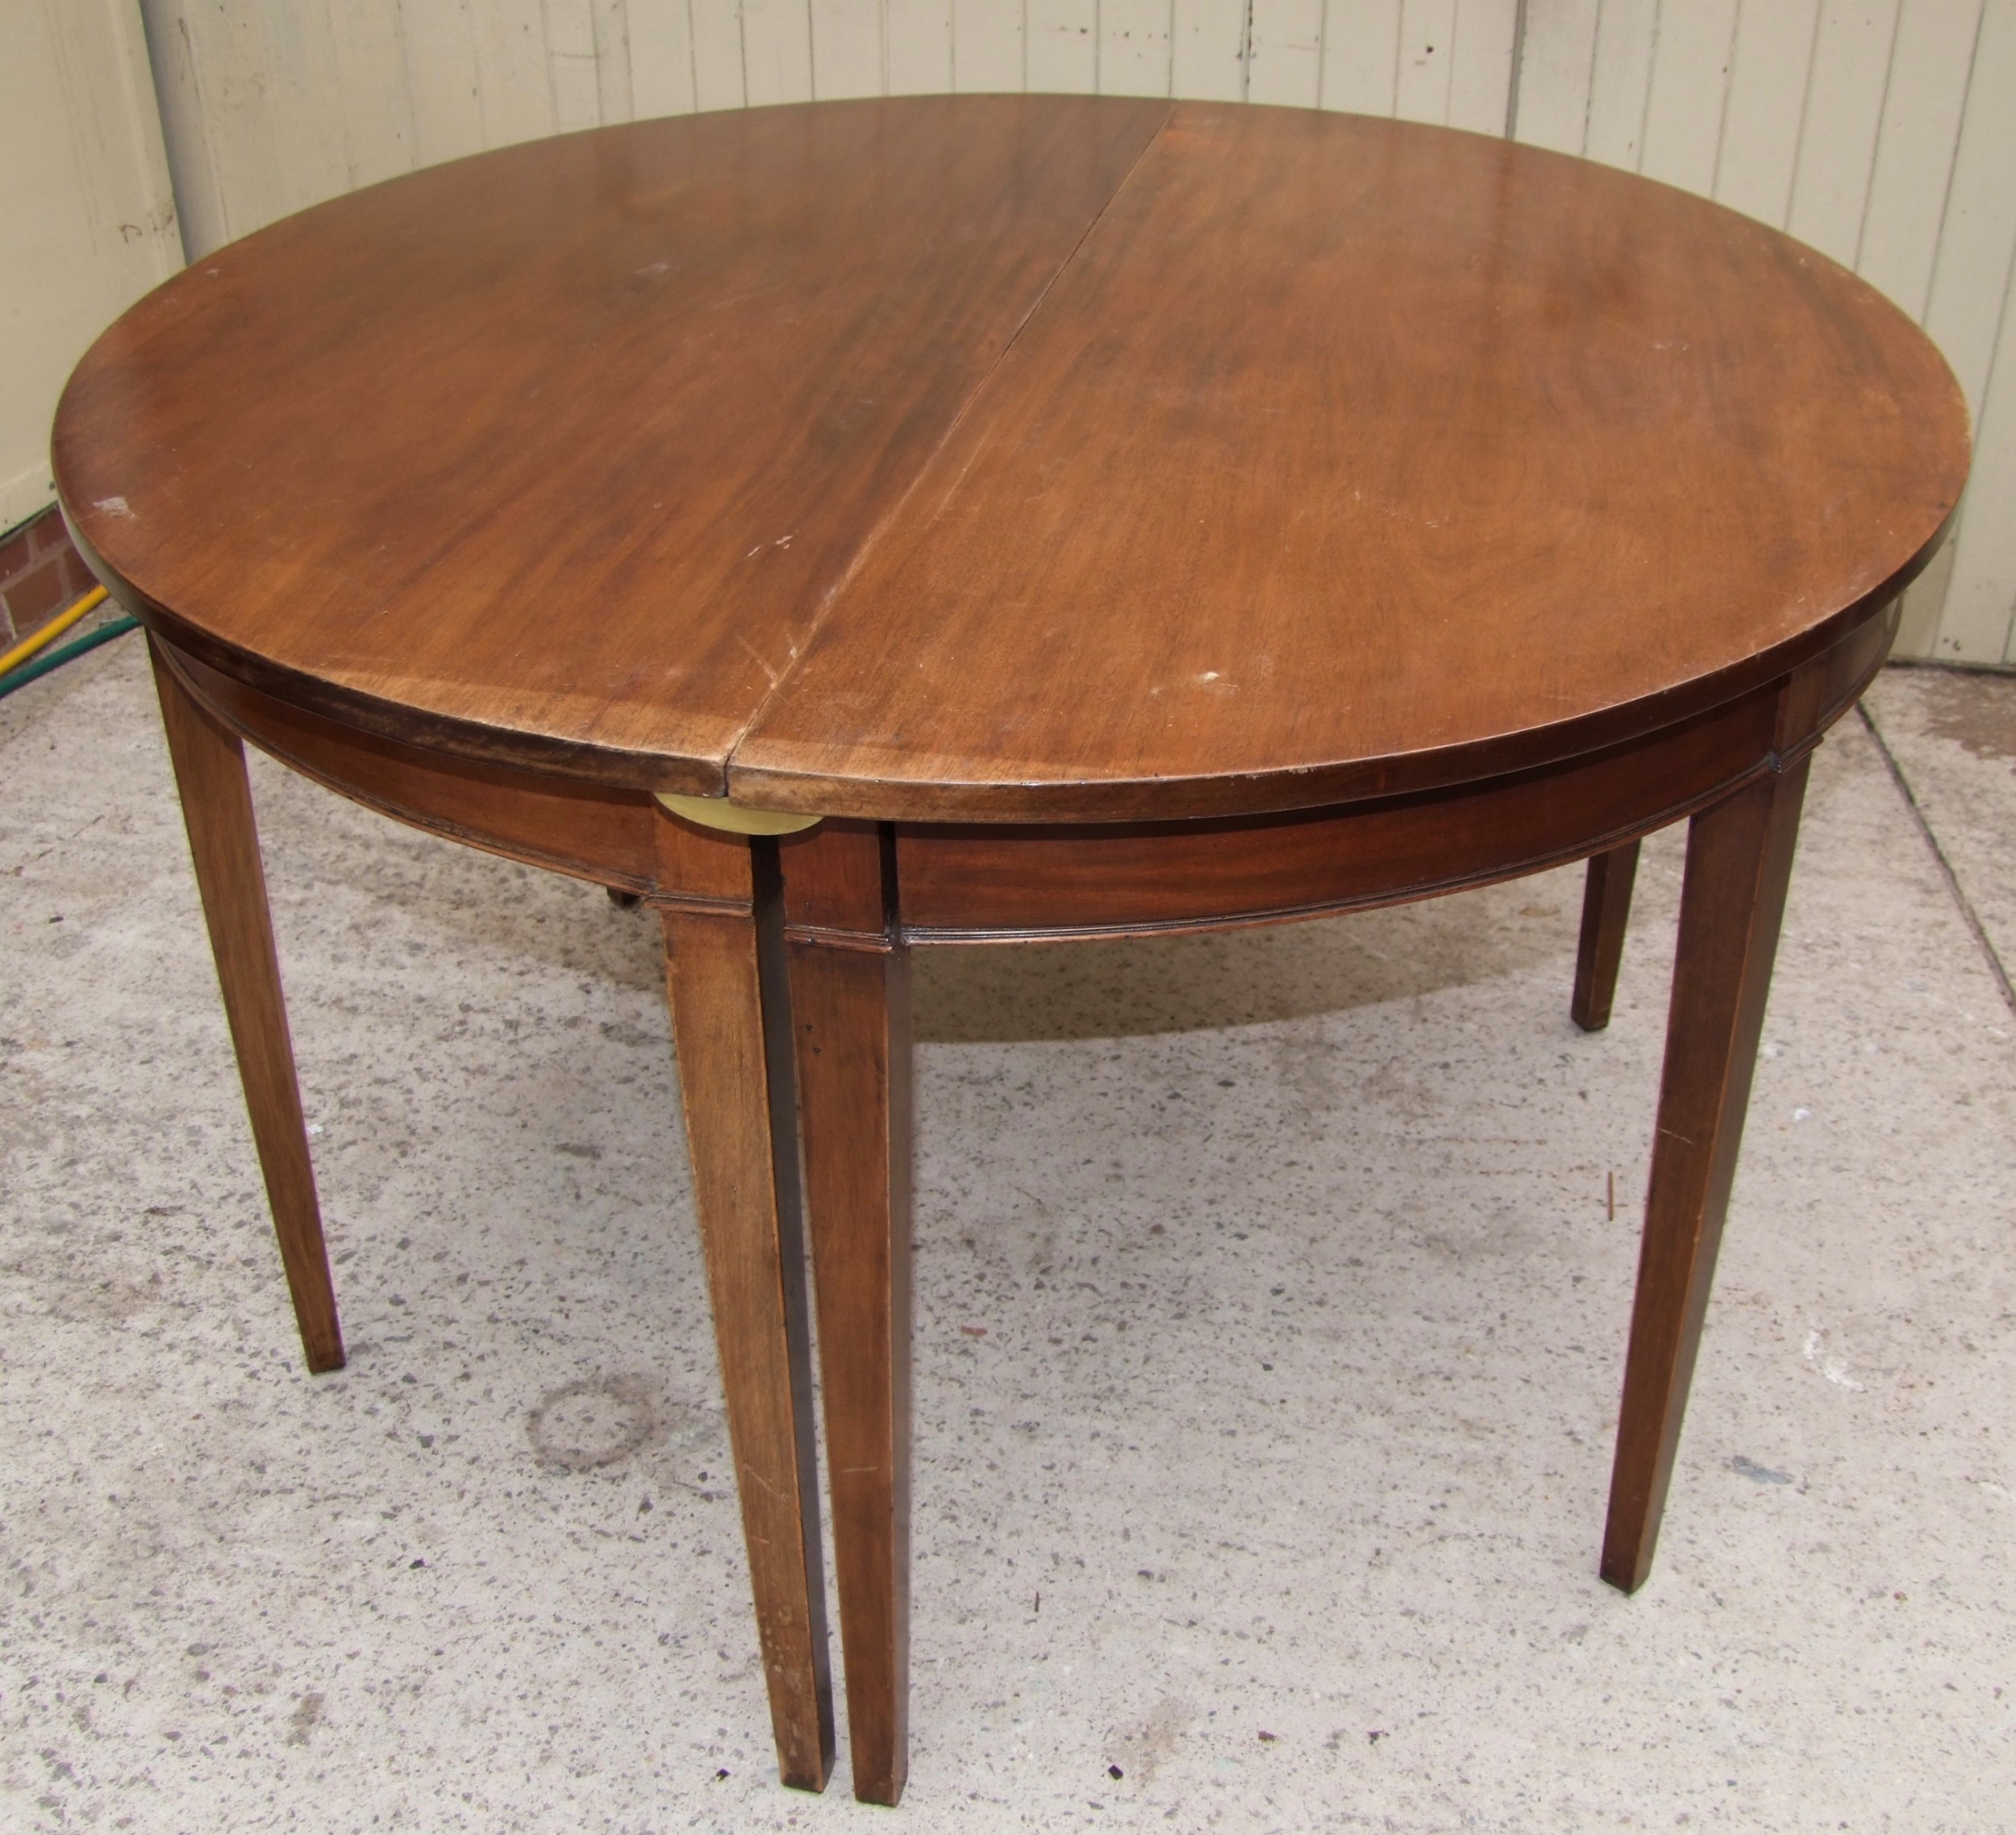 19th century d end oval dining table with one leaf